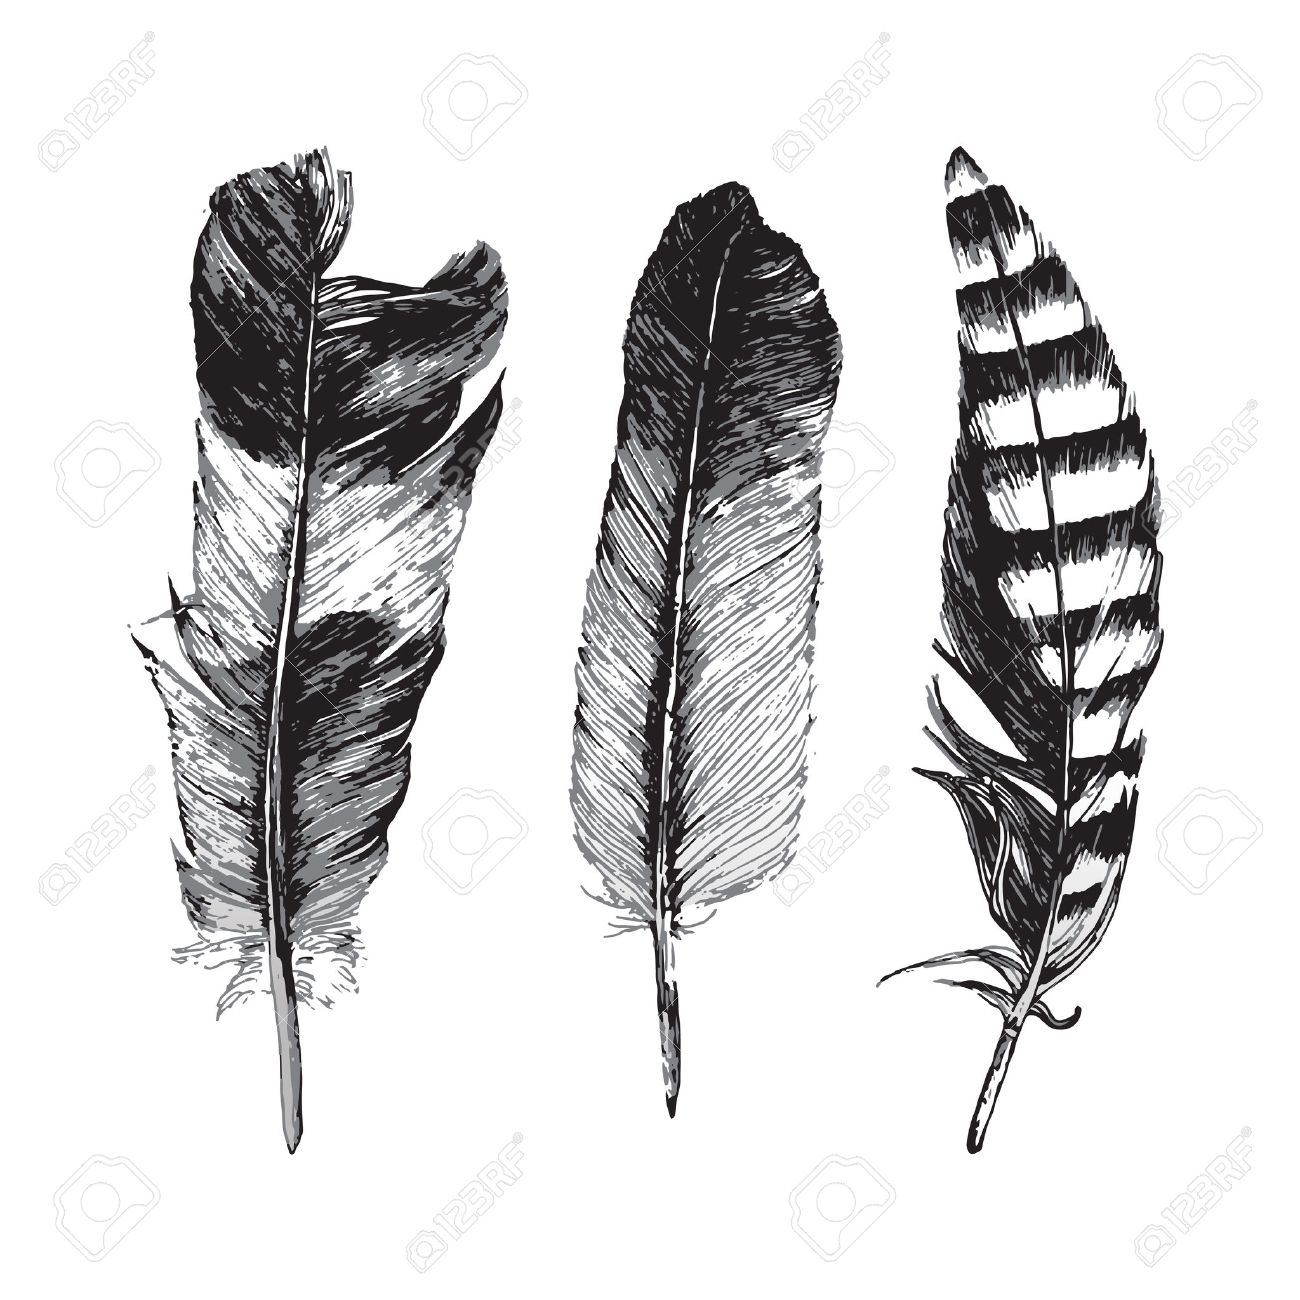 3 hand drawn feathers on white background - 43870906